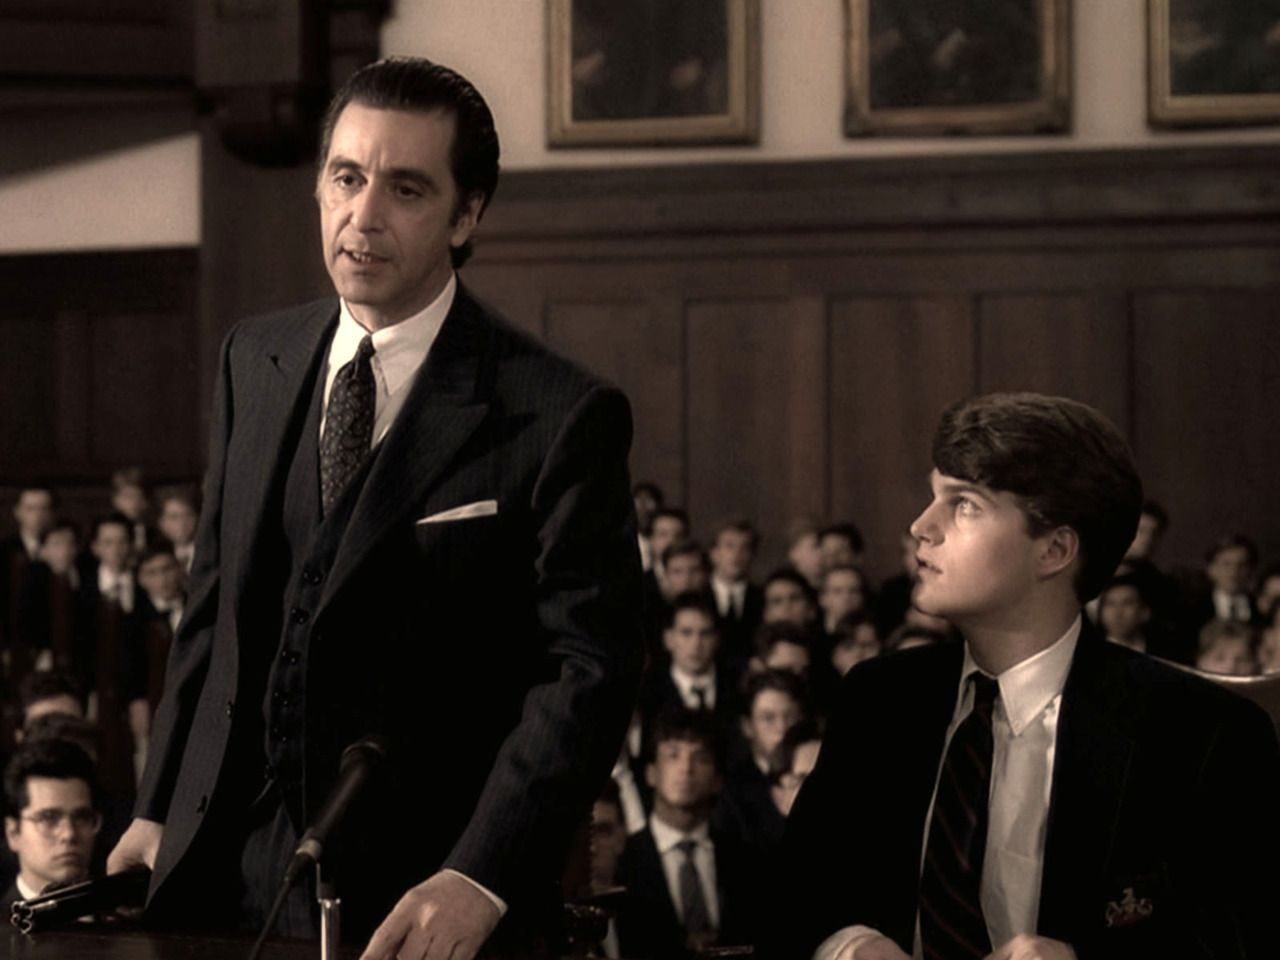 One Of The Greatest Movie Scenes Ever Al Pacino Scent Of A Woman Speech Al Pacino Movies Quotes Scene Iconic Movies